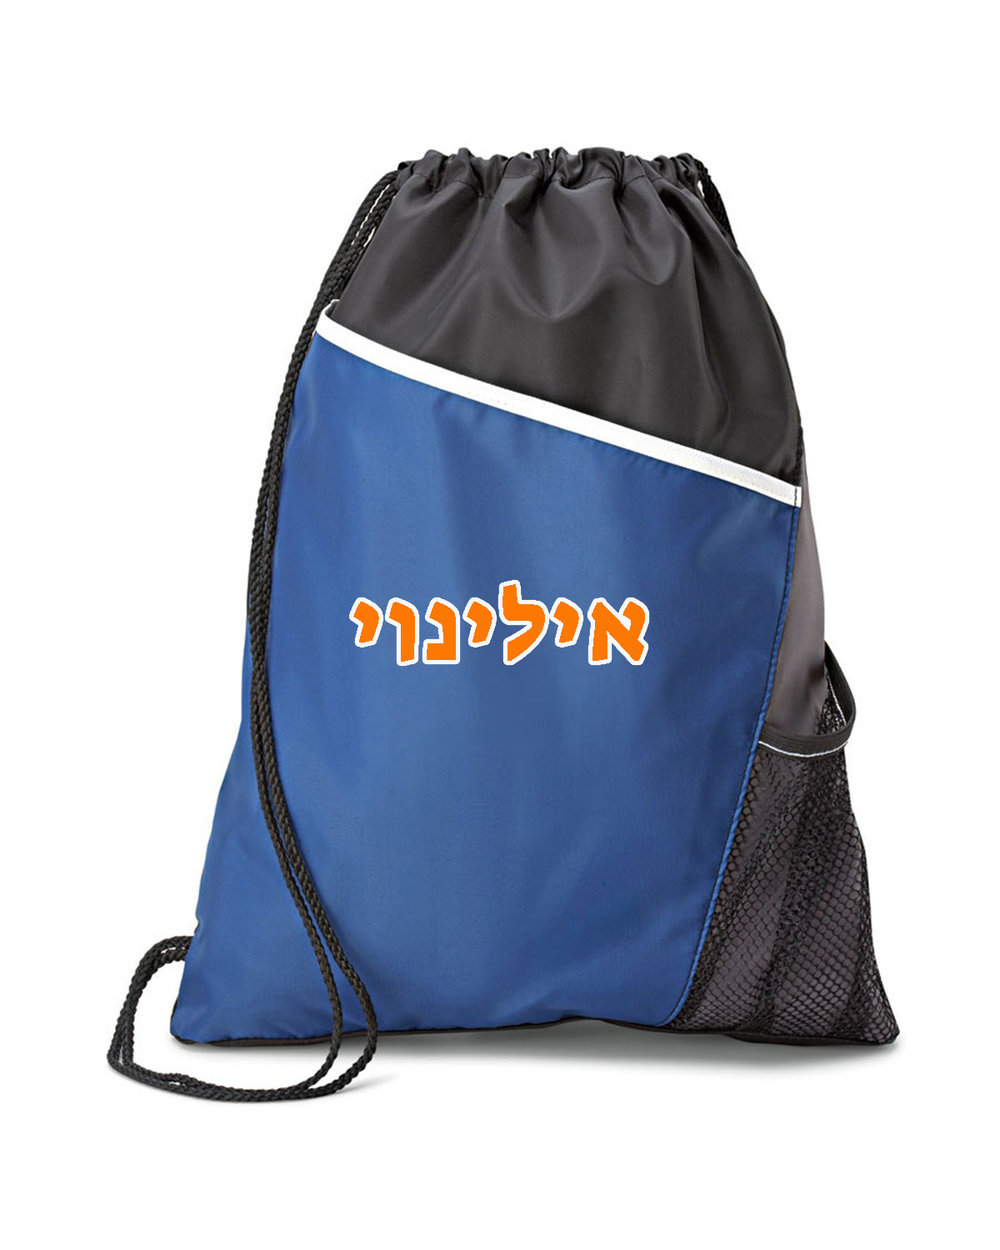 illinois bag.jpg